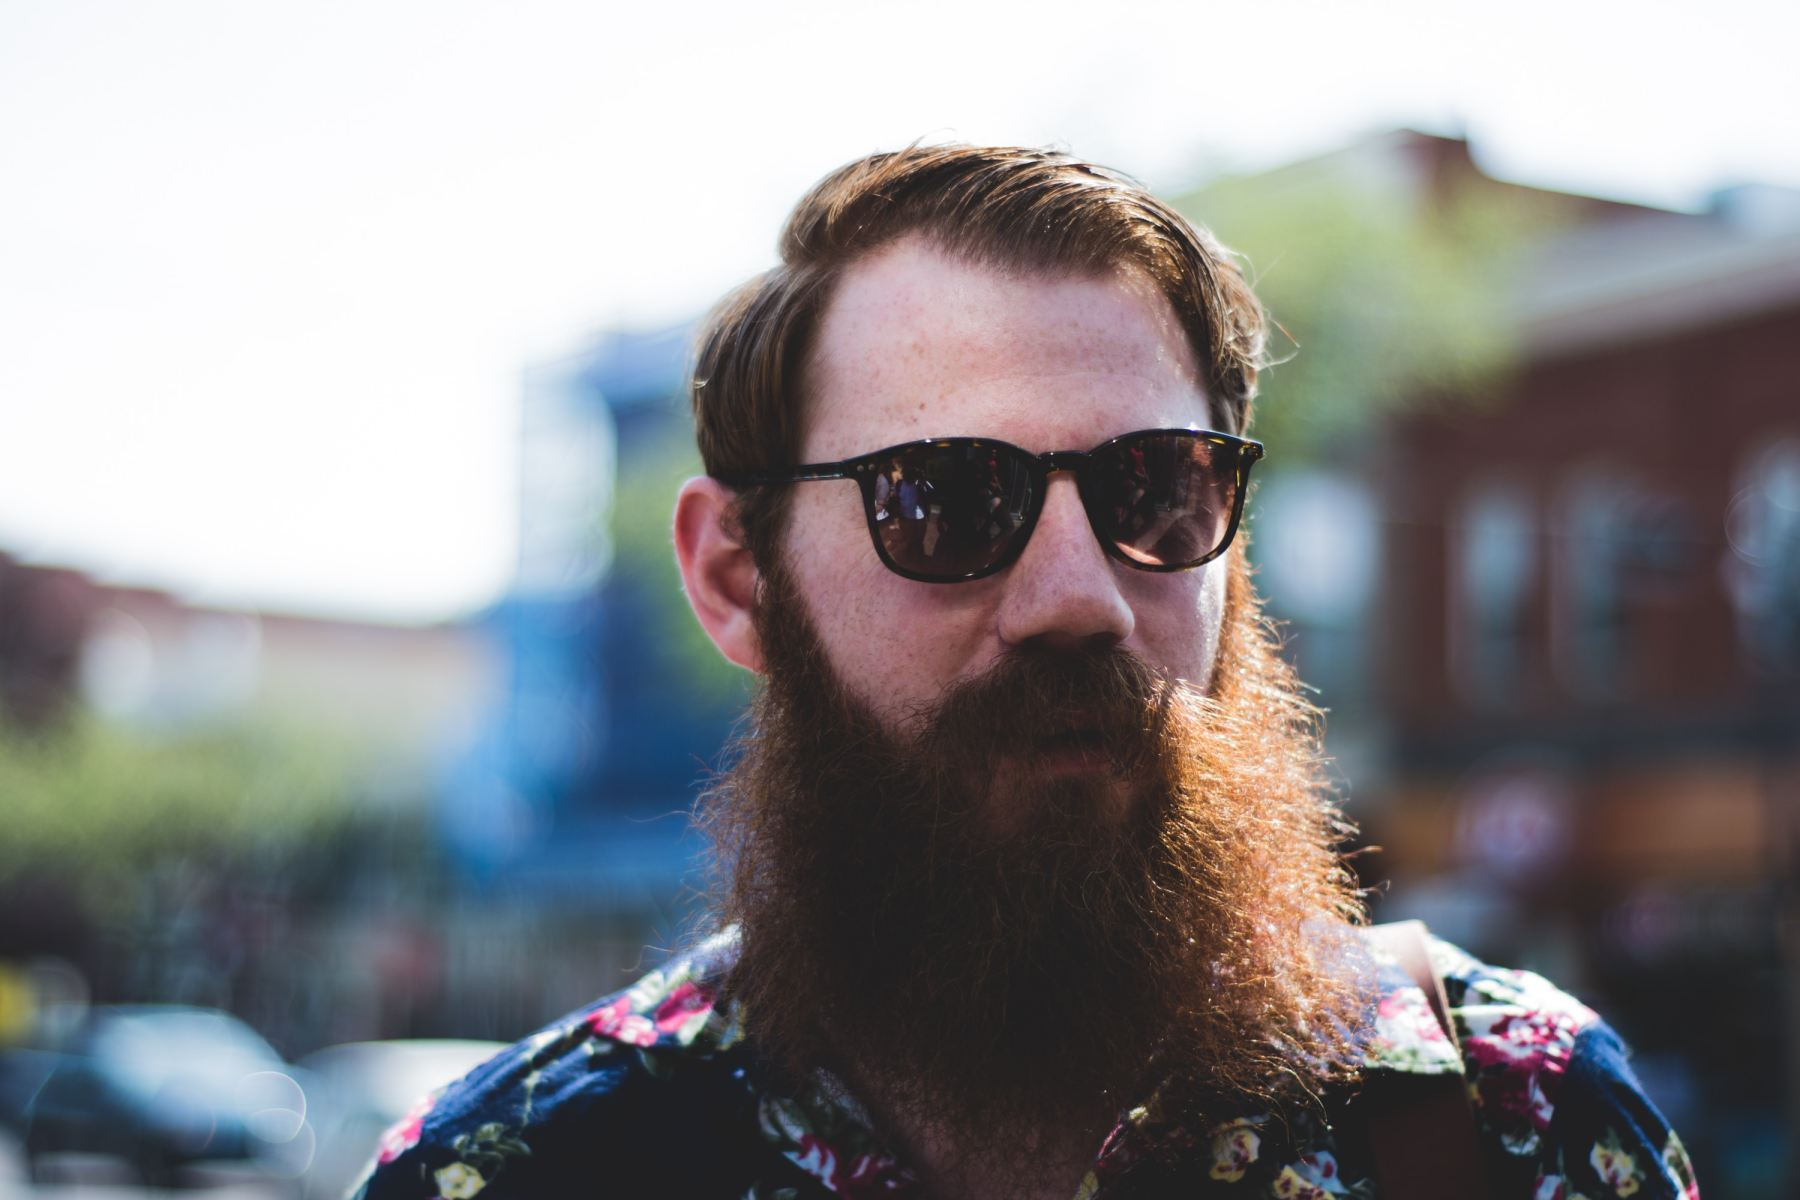 Sir, your hipster beard is holding up the line